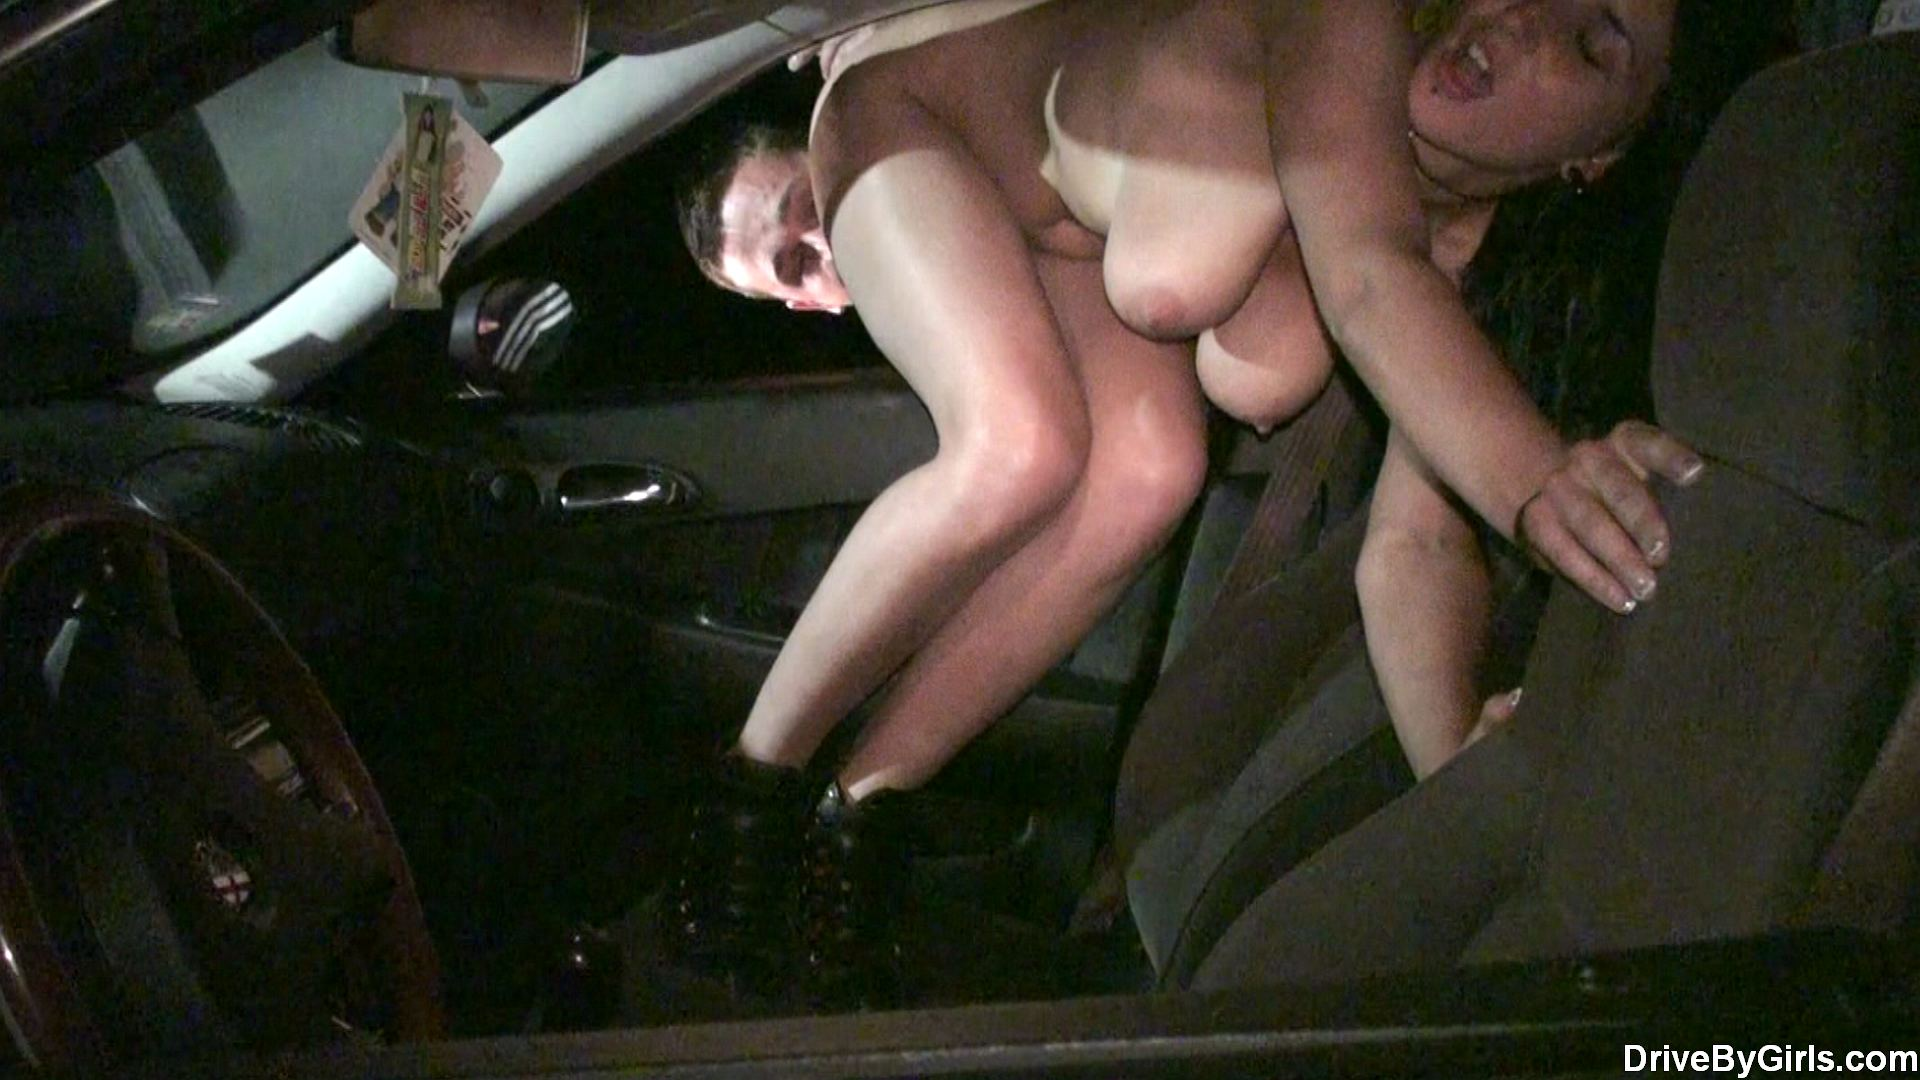 Camera shy cutie is filthy dogging whore